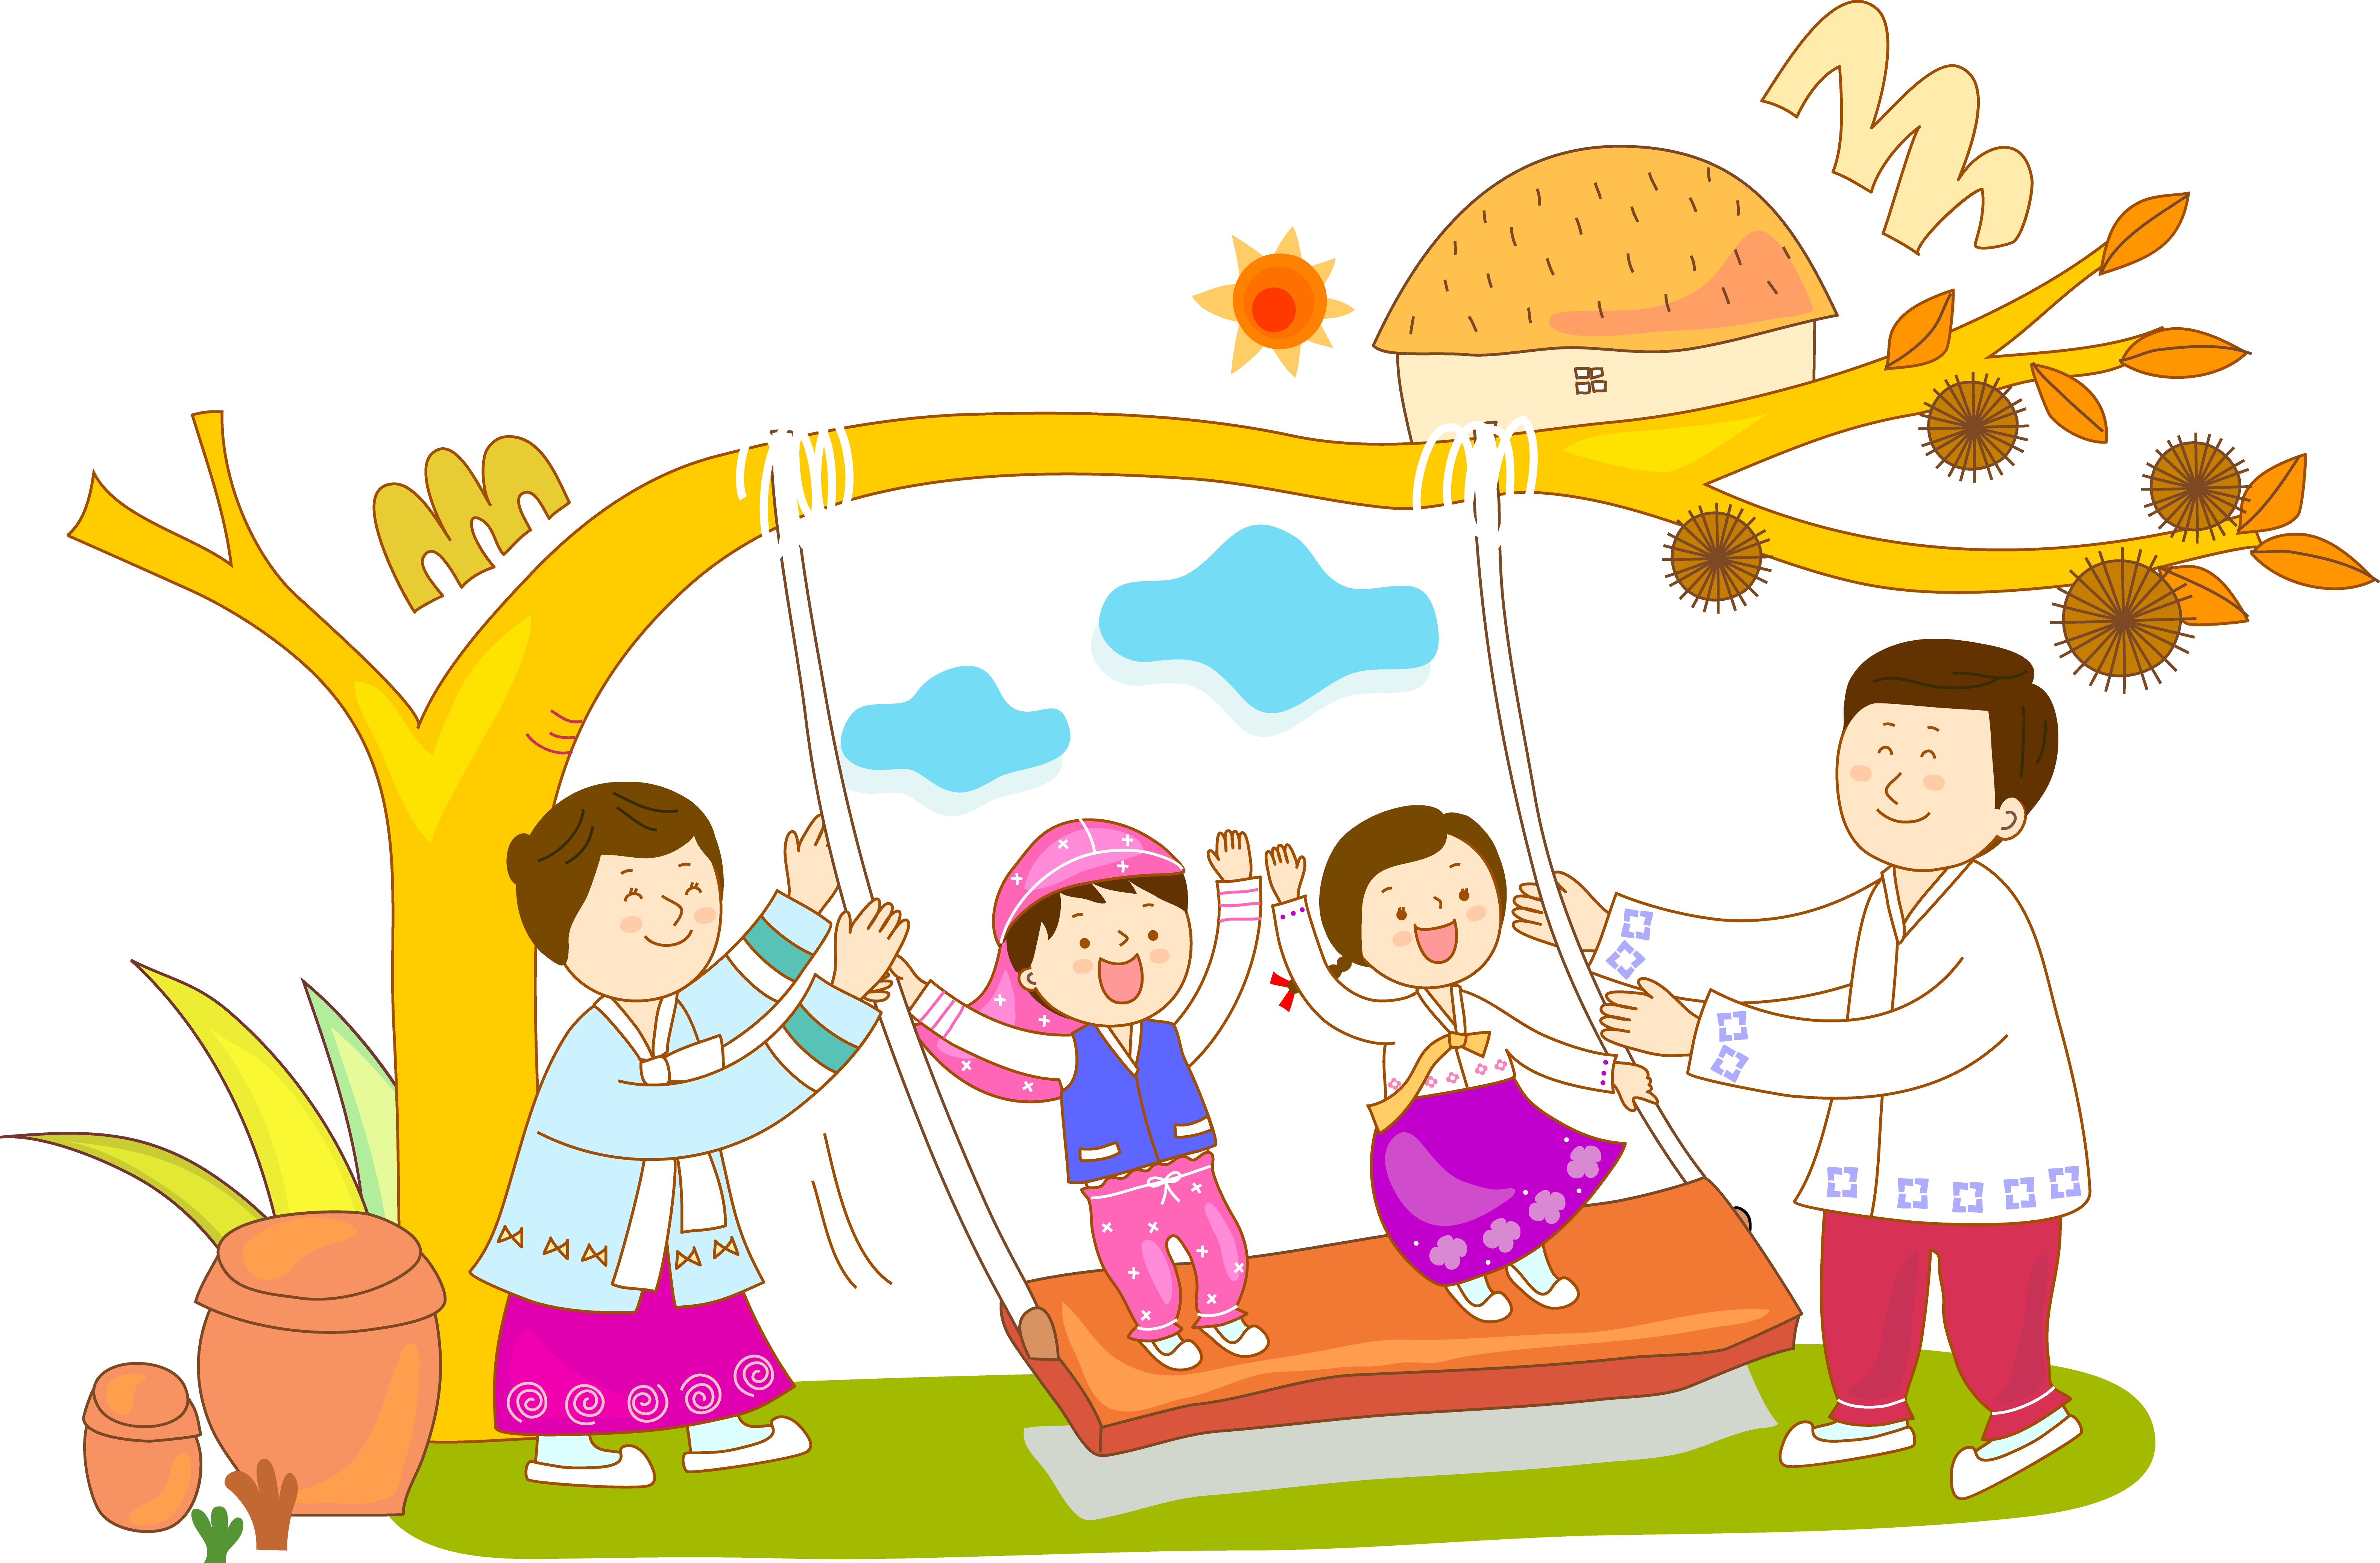 Toys vector chidren. Children playing with